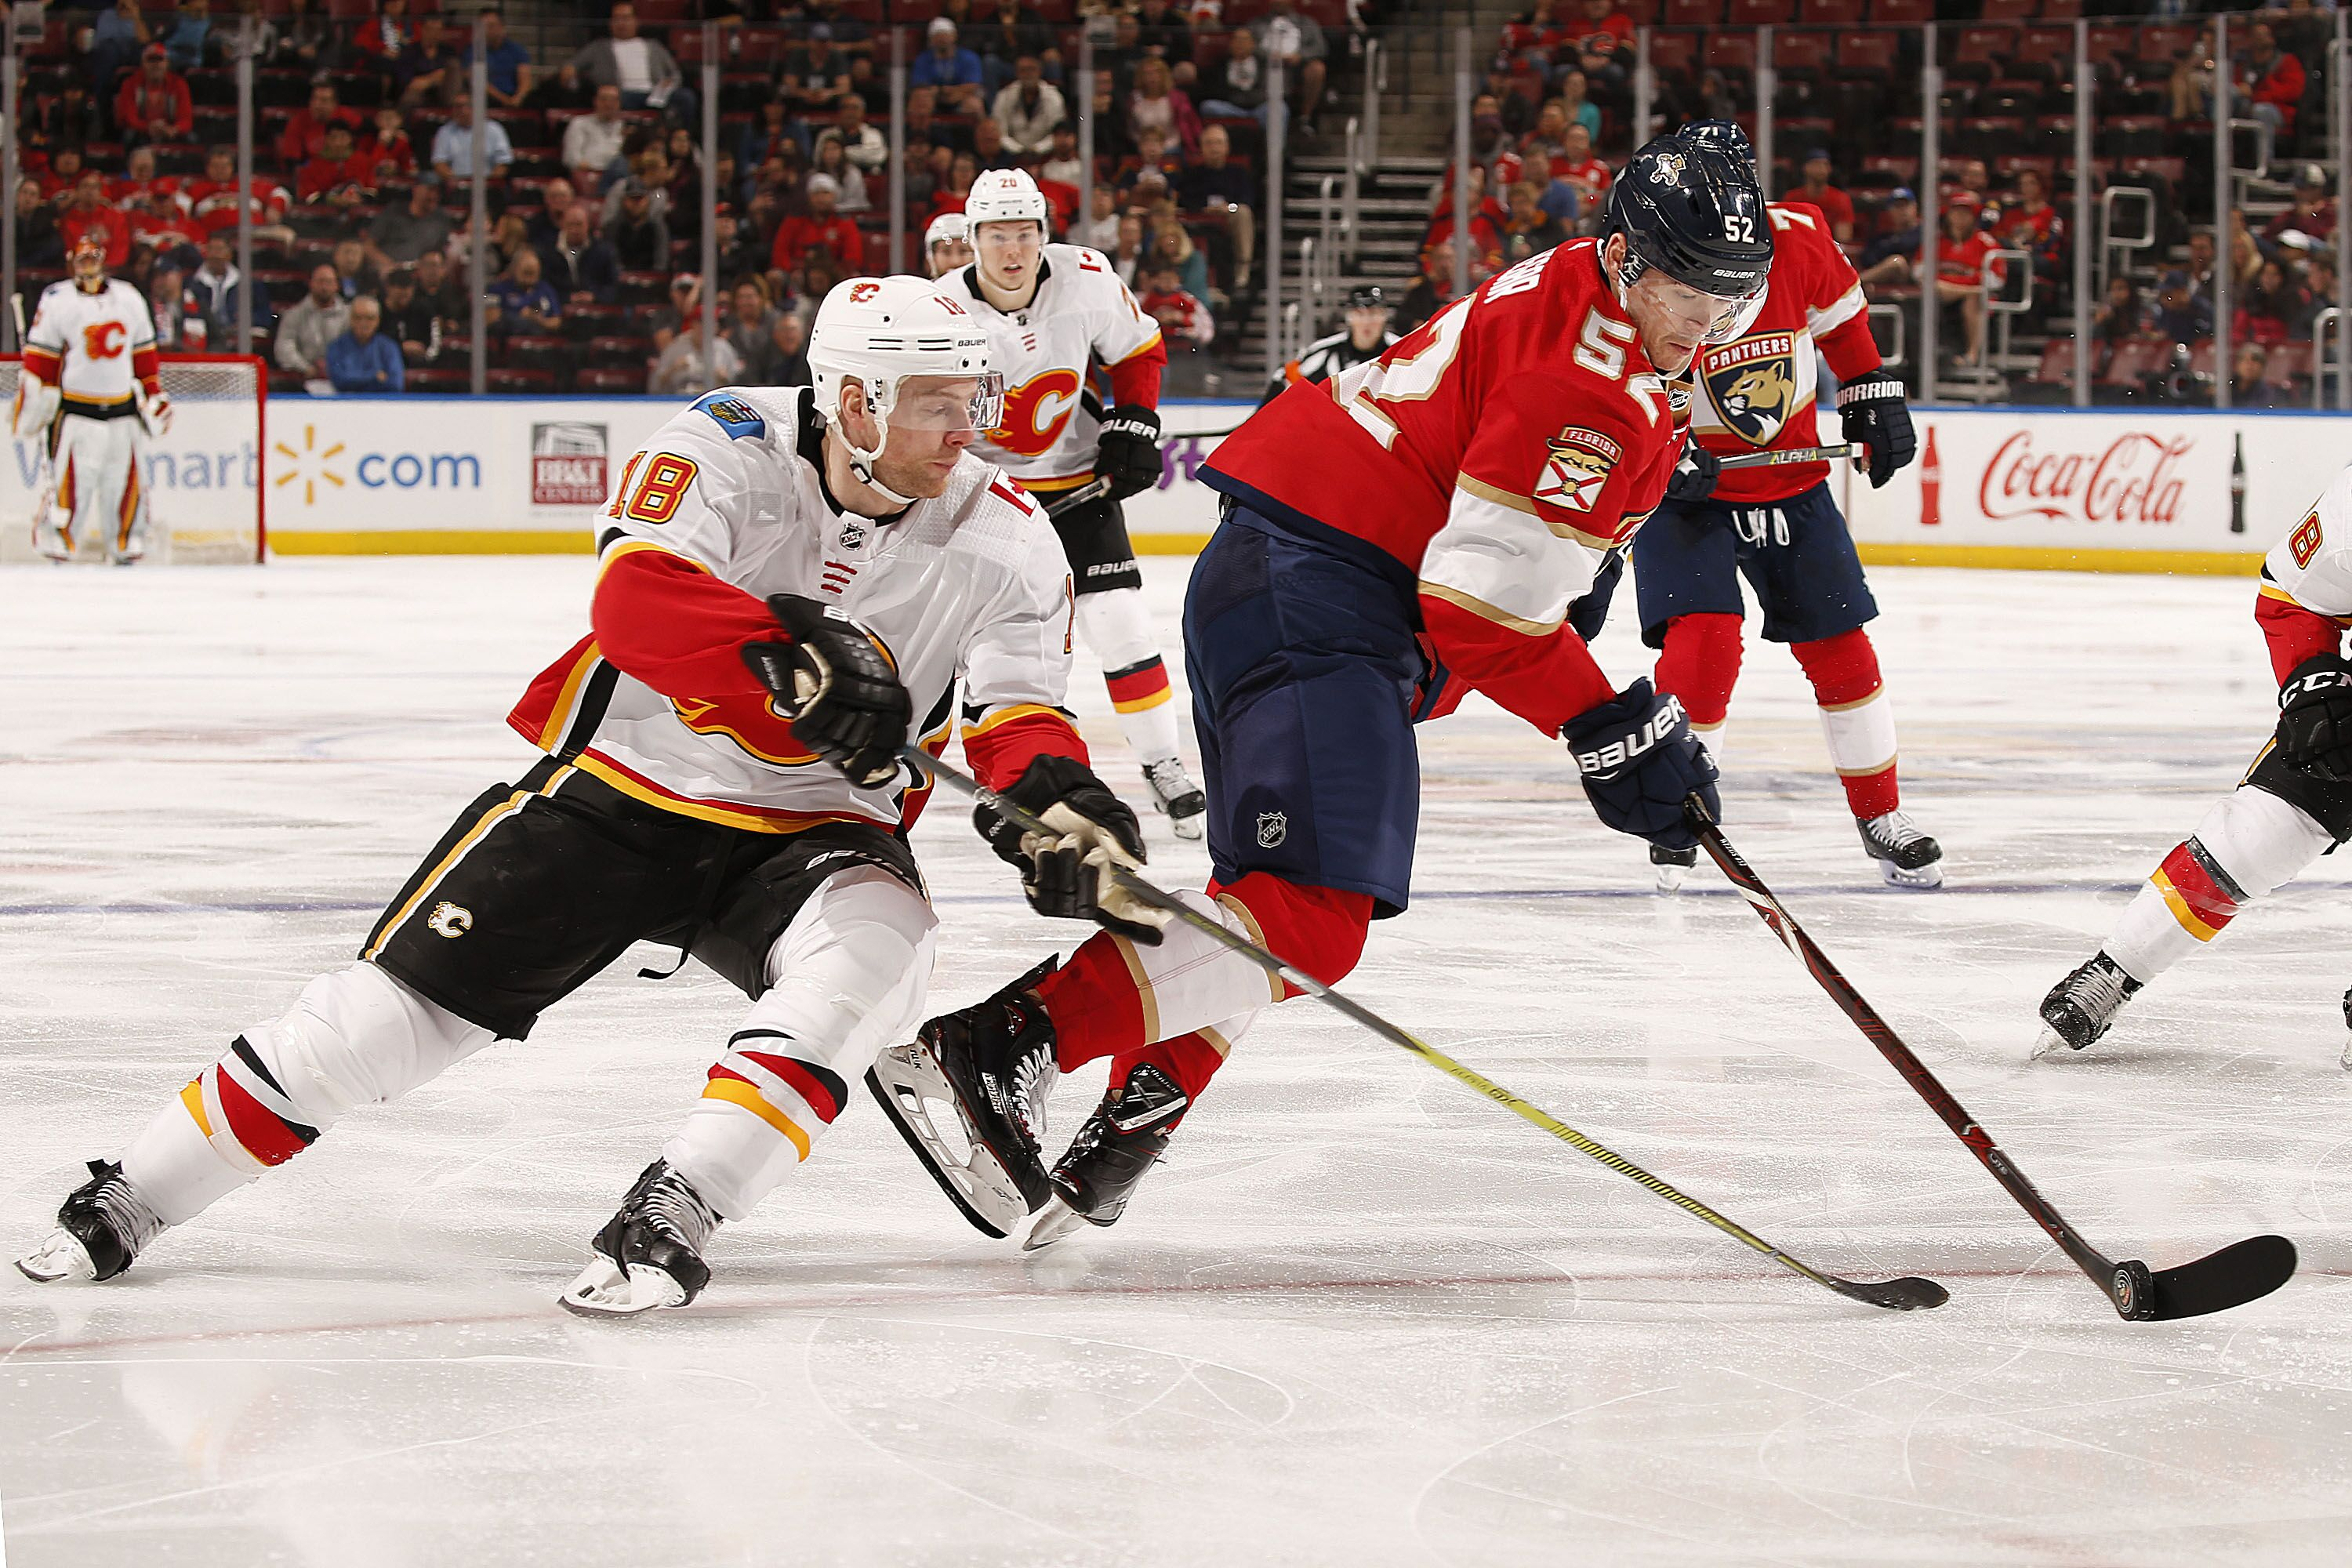 904357574-calgary-flames-v-florida-panthers.jpg